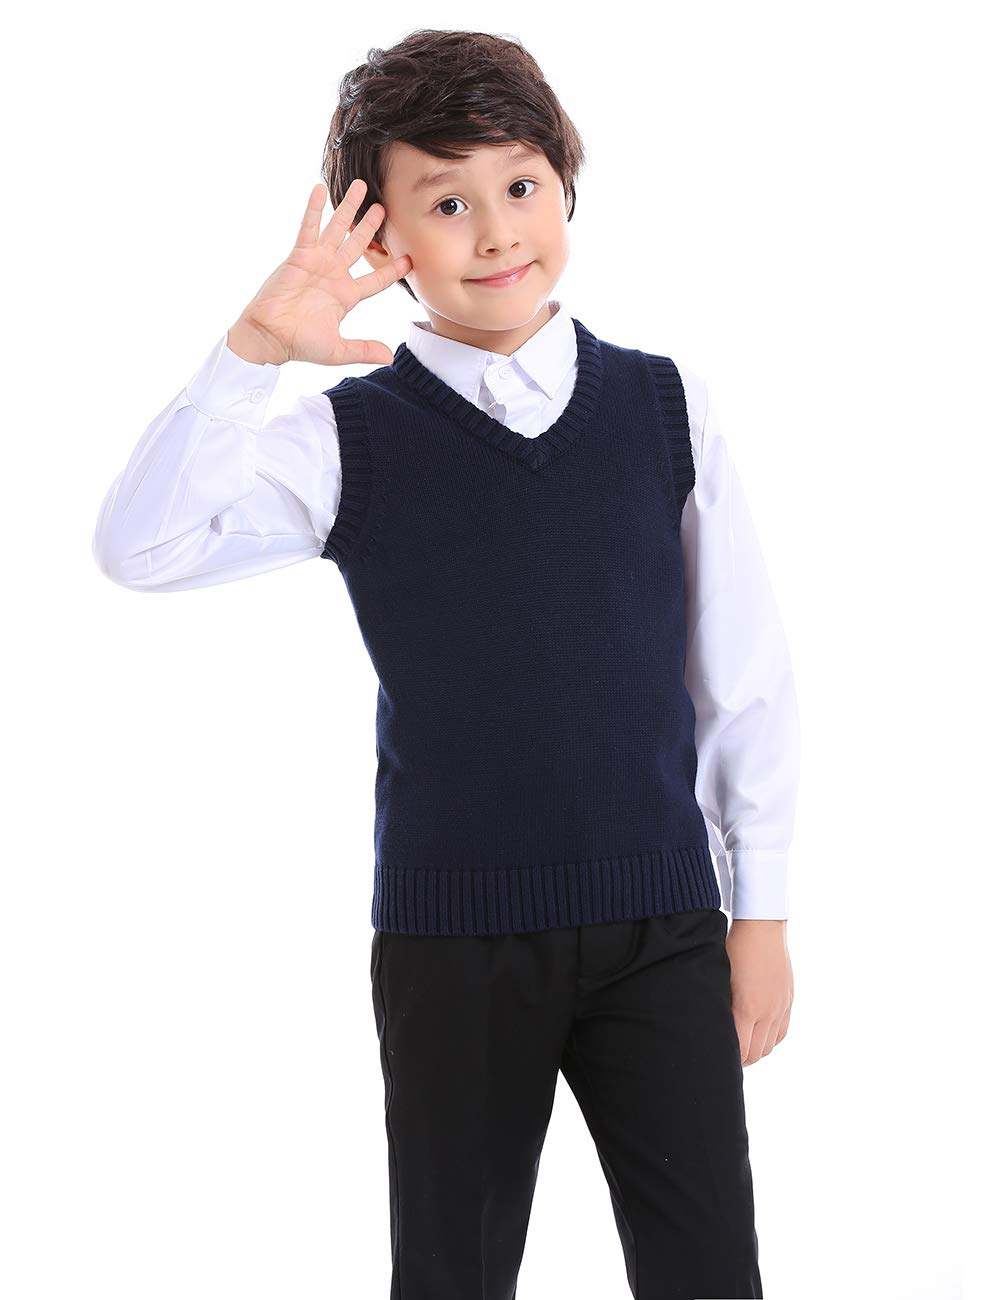 TopTie Boys V-Neck Cotton Knit Sleeveless Pullover School Uniform Sweater Vest (Navy/Black) SWEH-DK68304